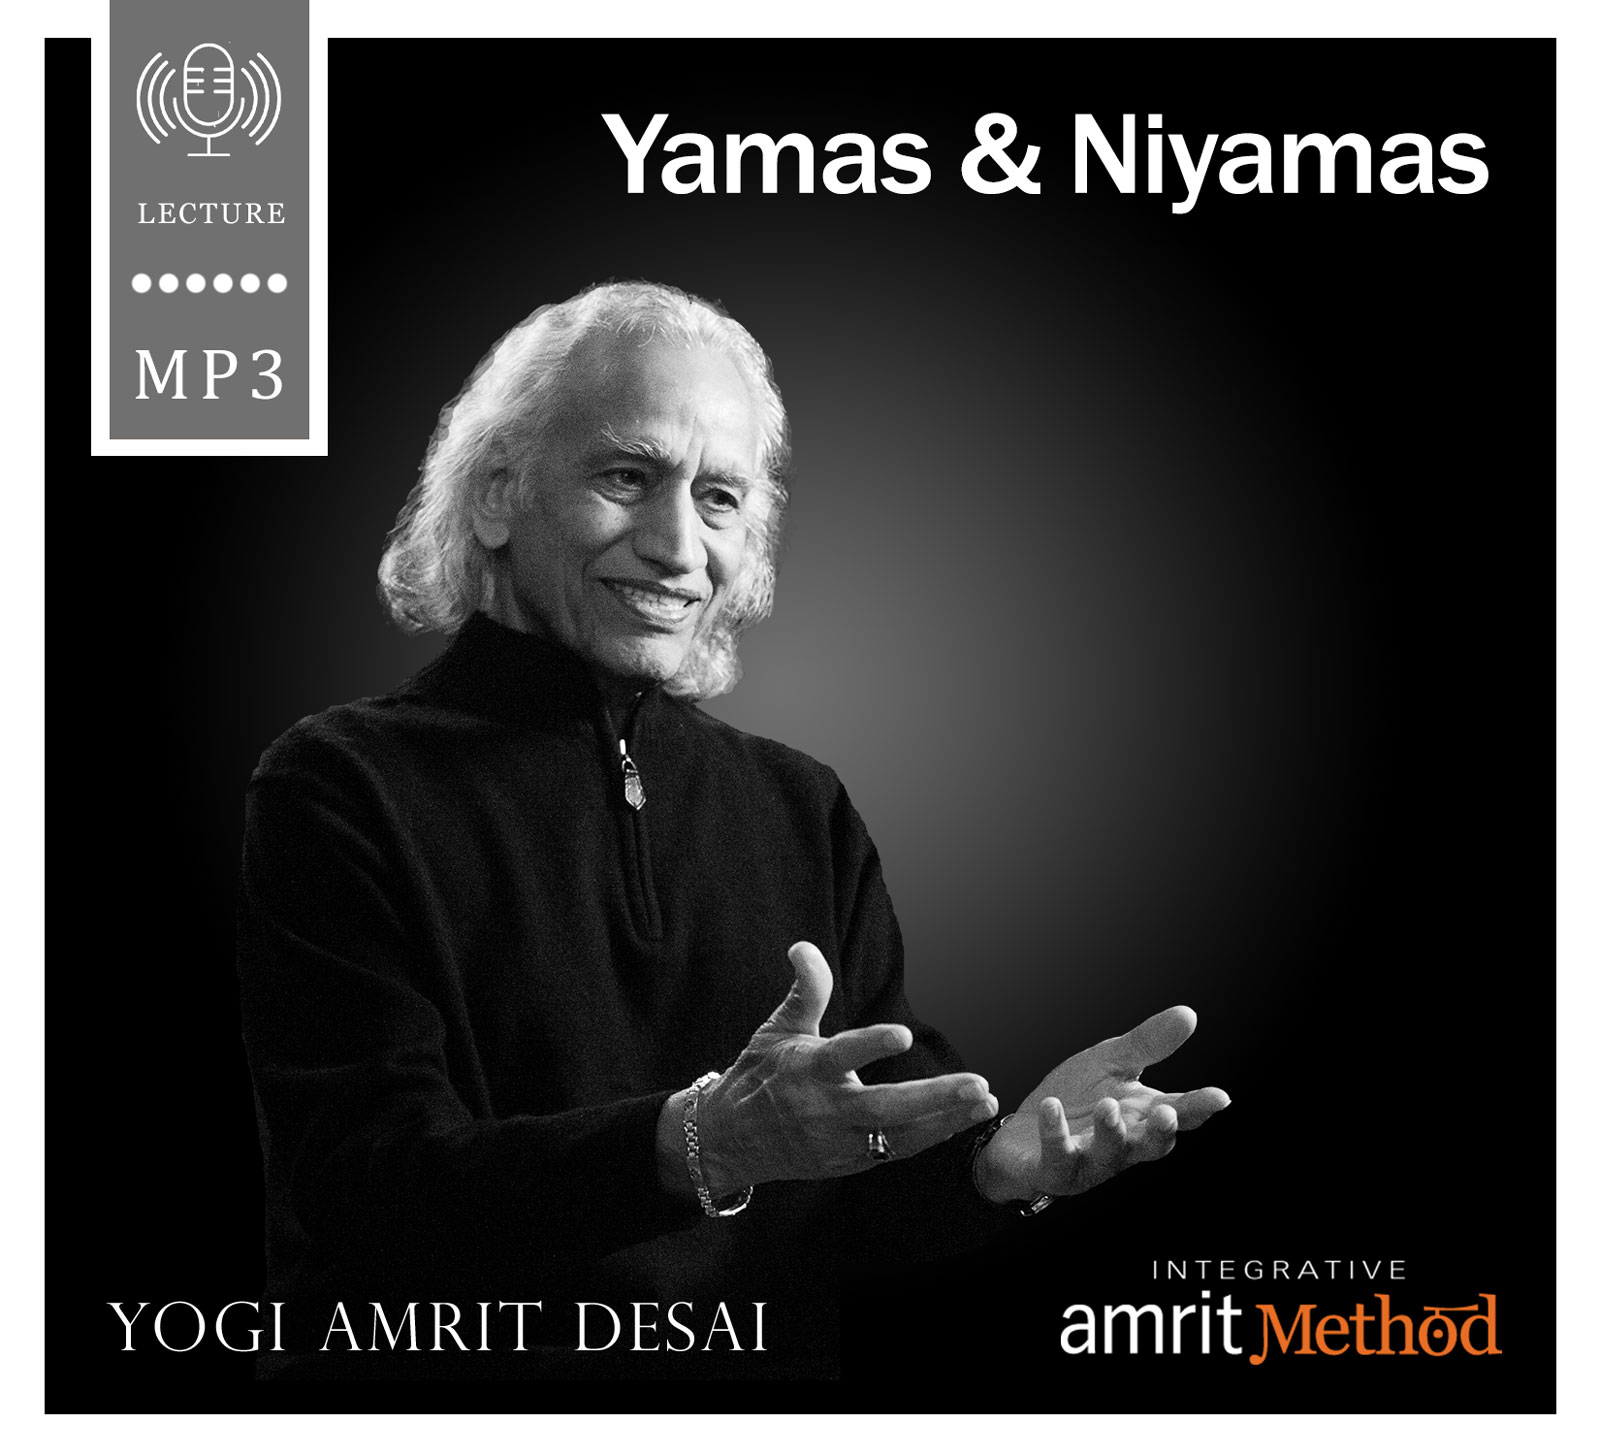 The yamas and niyamas are the guiding principles that are the basis of hatha and raja yoga. Yogi Amrit Desai interprets these powerful guidelines for daily conscious living to assist us in identifying and eliminating unconscious conflicts and blockages that serve as obstacles in our spiritual path and prevent us from achieving balance. The yamas and niyamas are the first two limbs of the eightfold yogic path as taught by Patanjali, the first to record yogic practices circa 200 B.C. Yogi Desai interprets these guidelines and explains that the purpose of the yamas and niyamas is to eliminate disturbances and conflicts that come from both within and without. The science of yoga is applied in our lives through the examination of our unconscious patterns, beliefs and a behaviors and their consequences. Observing the disciplines Patanjali outlines allows us to see and accept ourselves where we are now while simultaneously bringing us into alignment with our intentions. Sincere practice of the yamas and niyamas will eventually remove the obstacles that veil the spirit within. Originally recorded on May 5, 2003 in Canon City, Colorado. Duration: 70 minutes